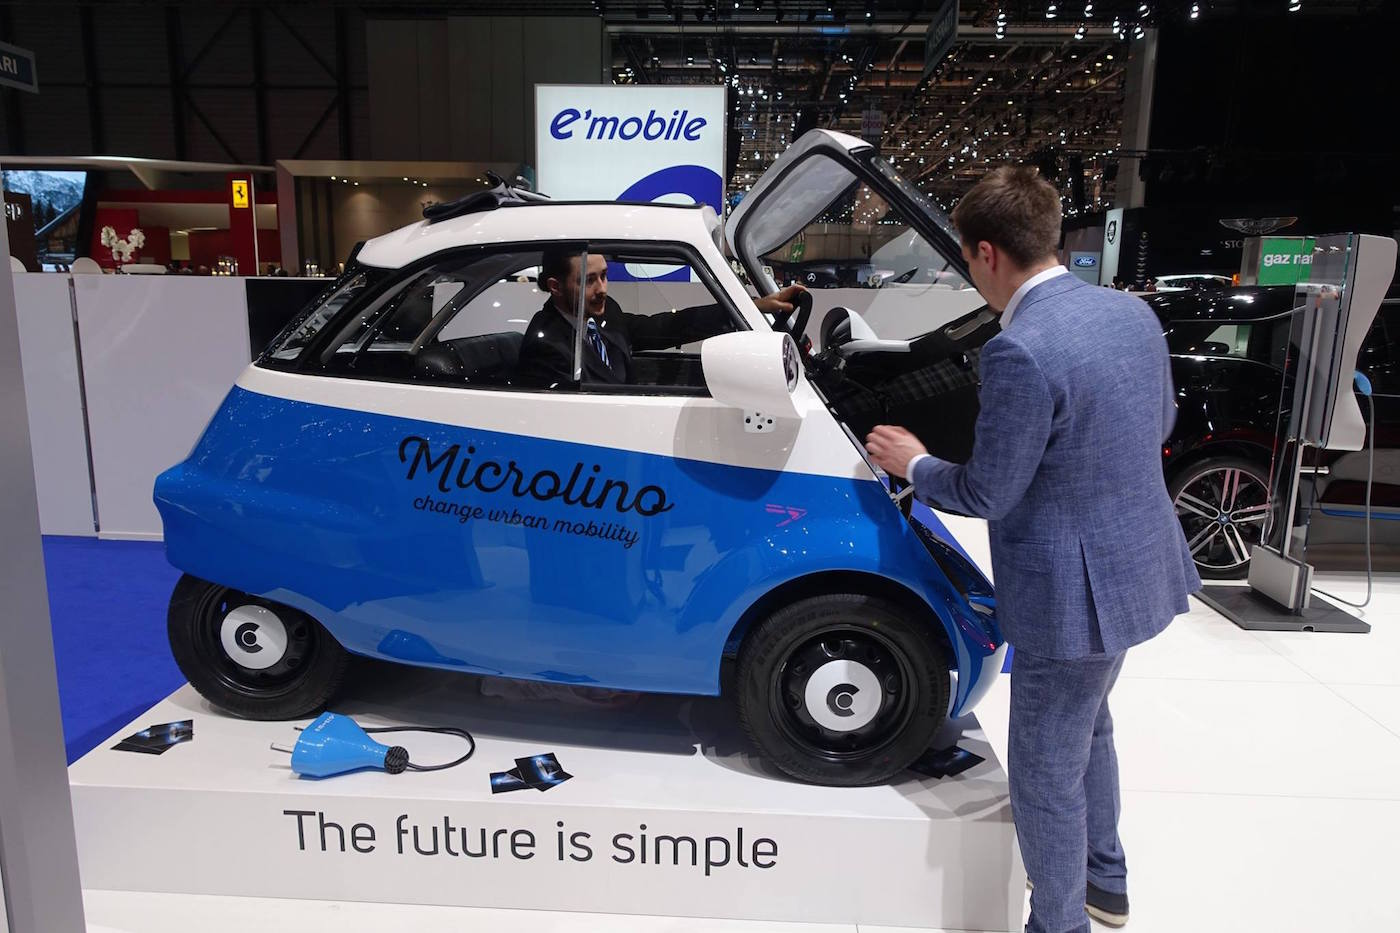 Steve Urkel's car has been resurrected as an electric vehicle